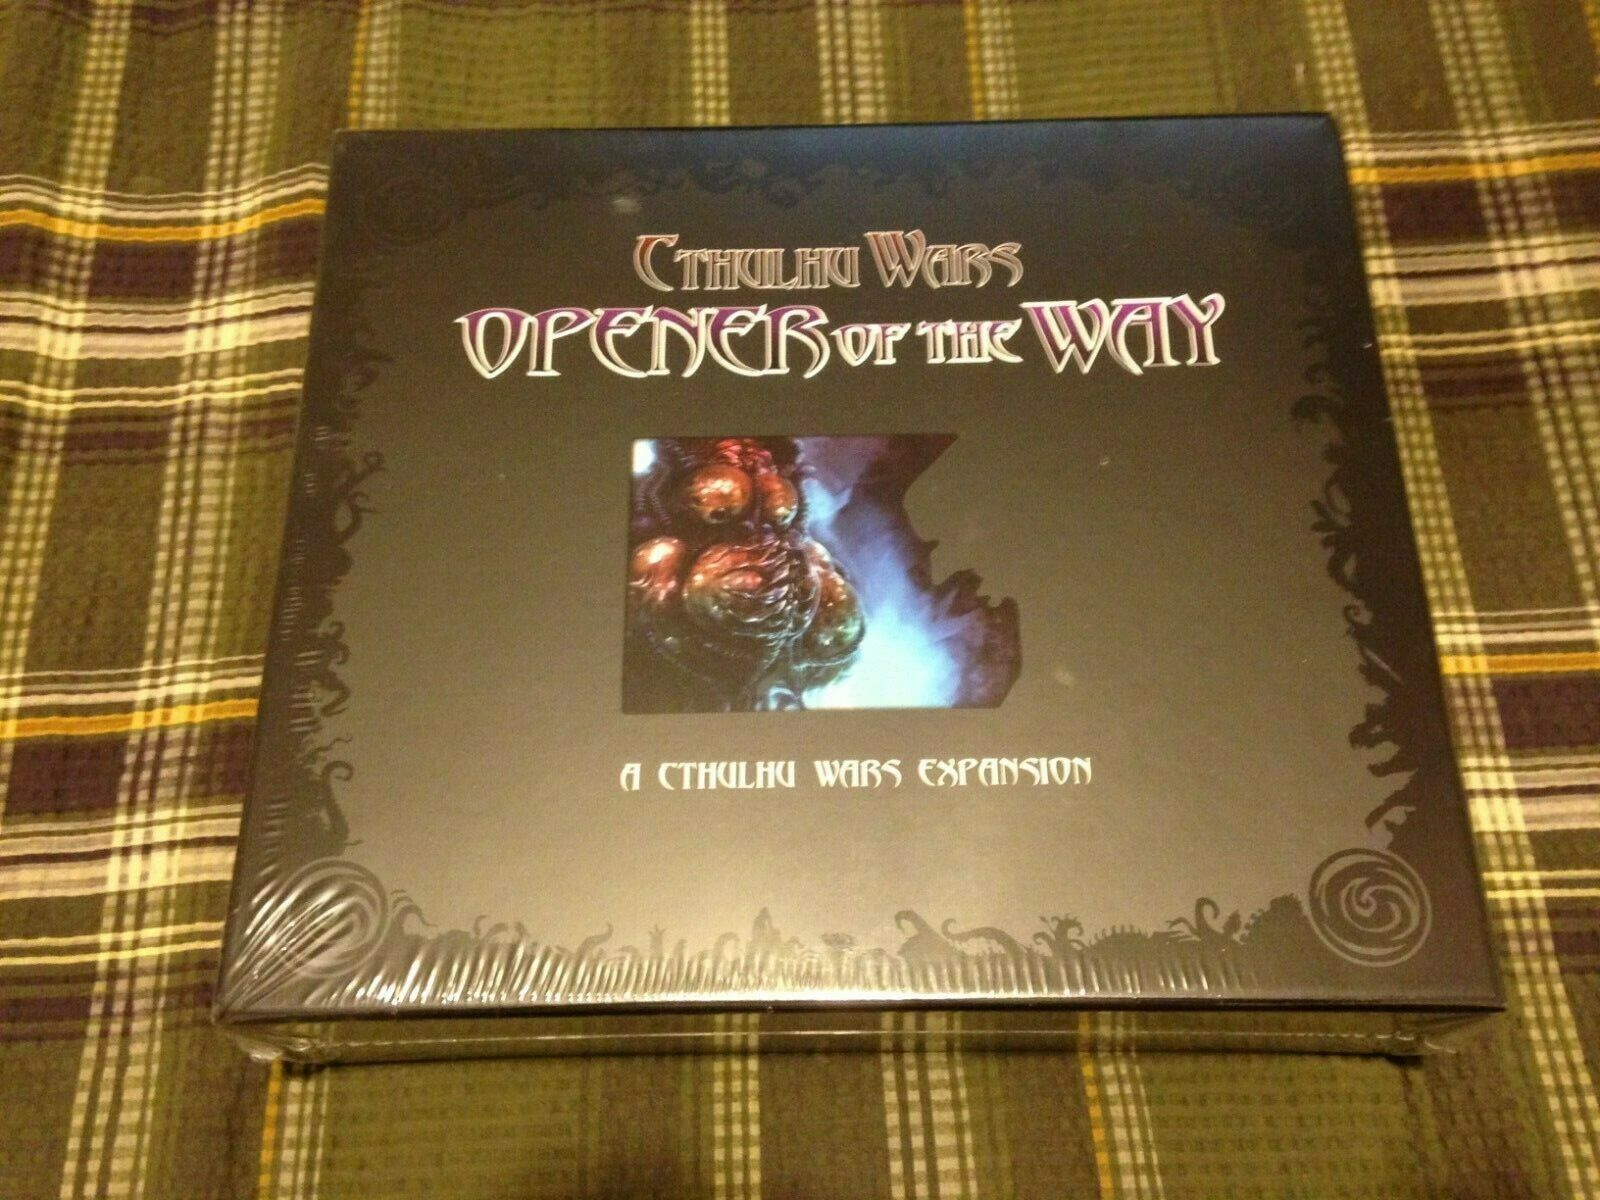 Opener of the Way, Cthulhu Wars, New, Petersen Games